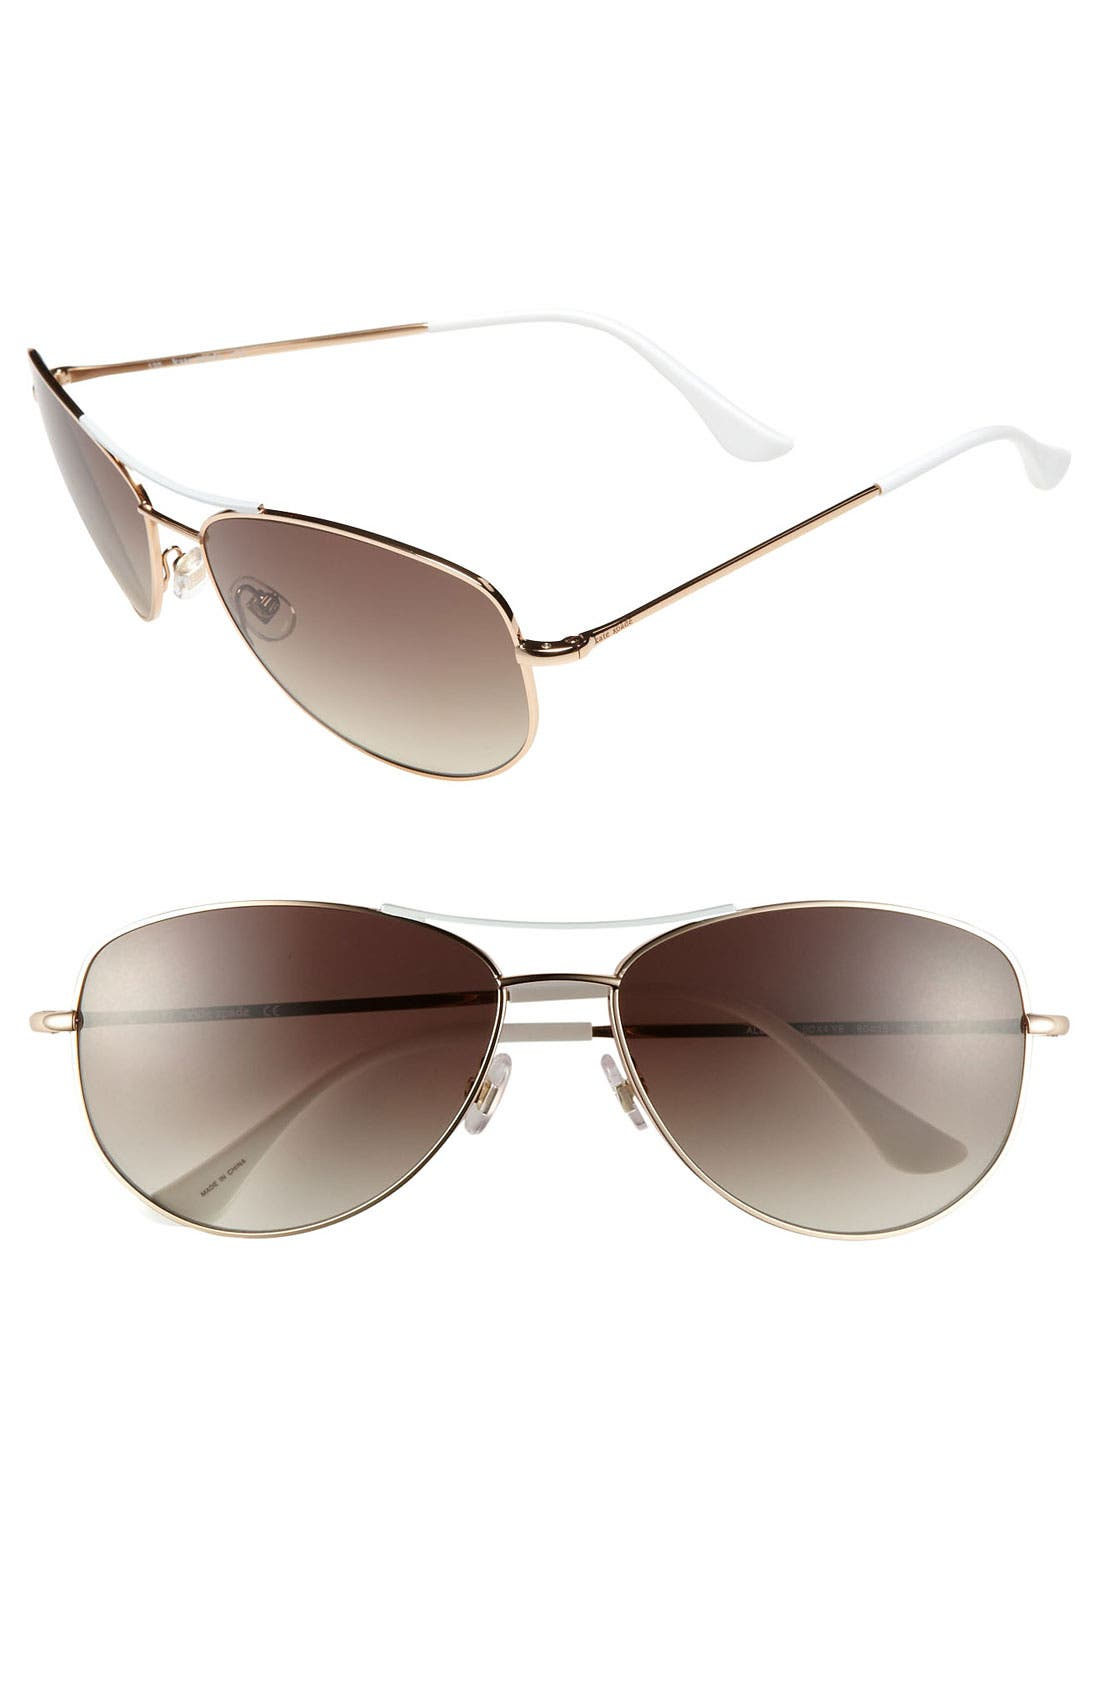 Alternate Image 1 Selected - kate spade new york 'ally 3' 60mm aviator sunglasses